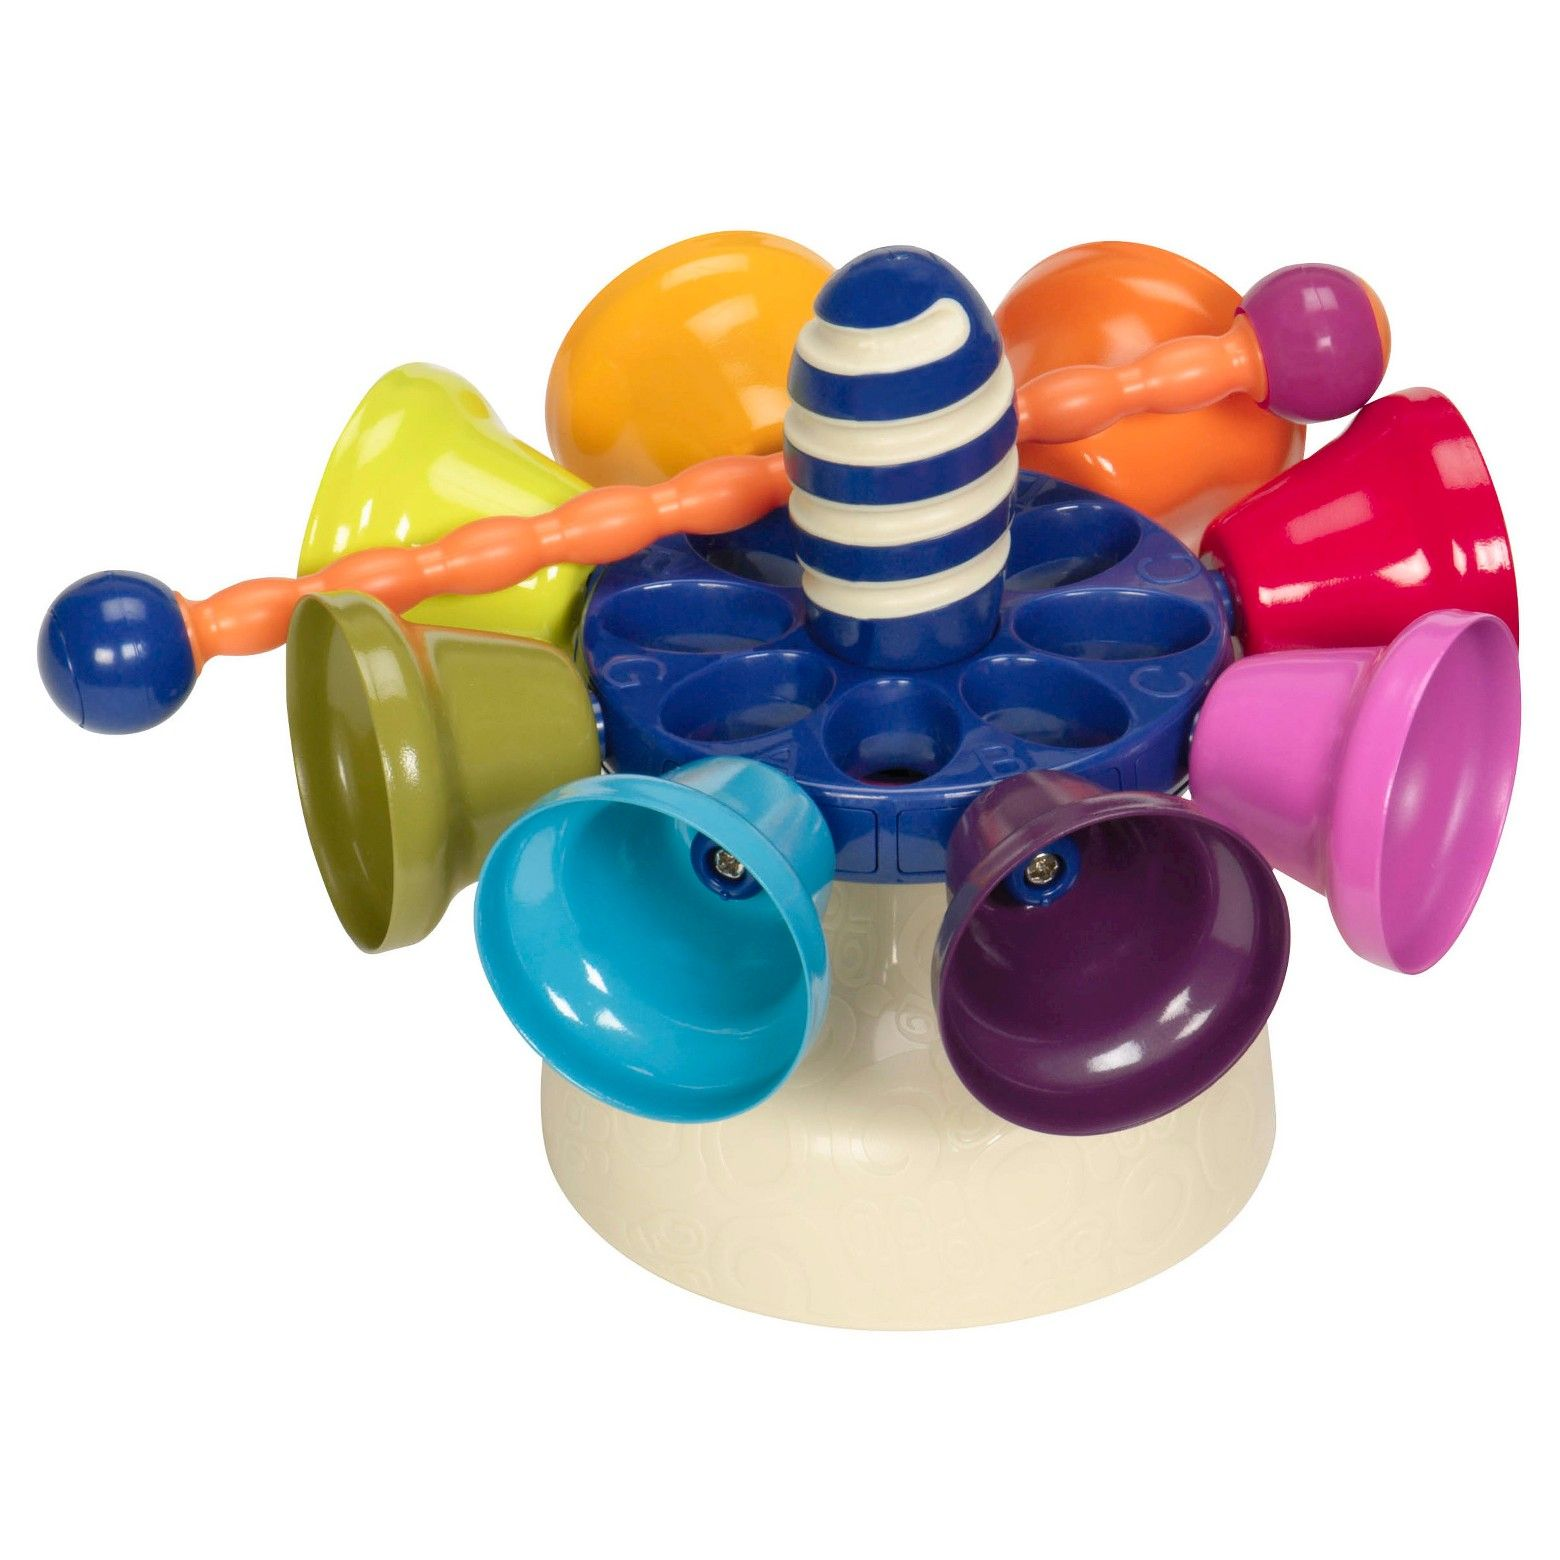 B toys Carousel Bells Toy Drums and Percussion  Owenus Wish List